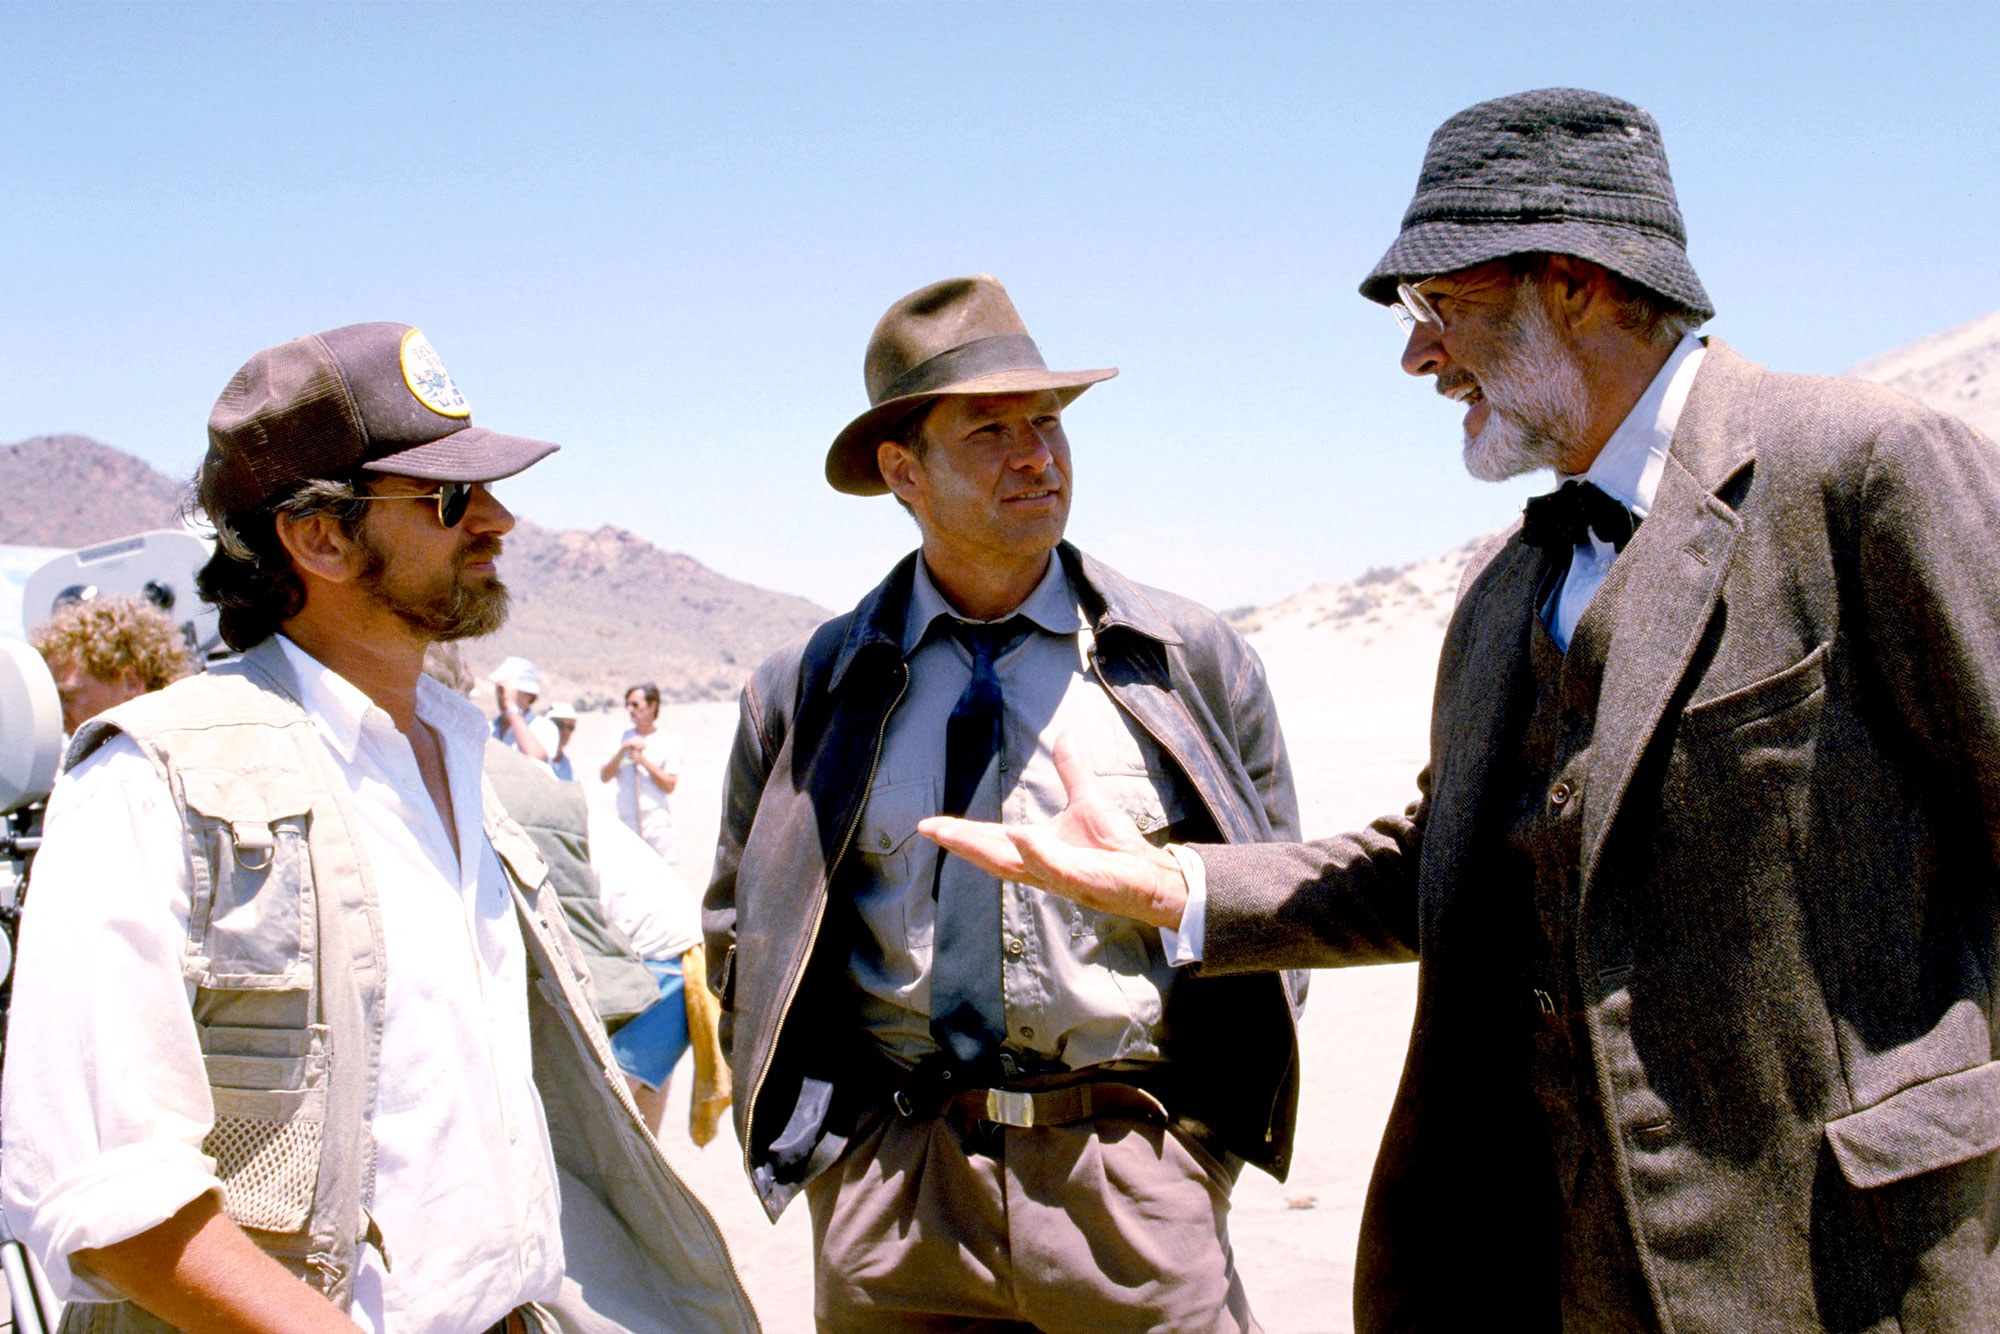 Harrison Ford and Sean Connery discuss last details with Steven Spielberg.